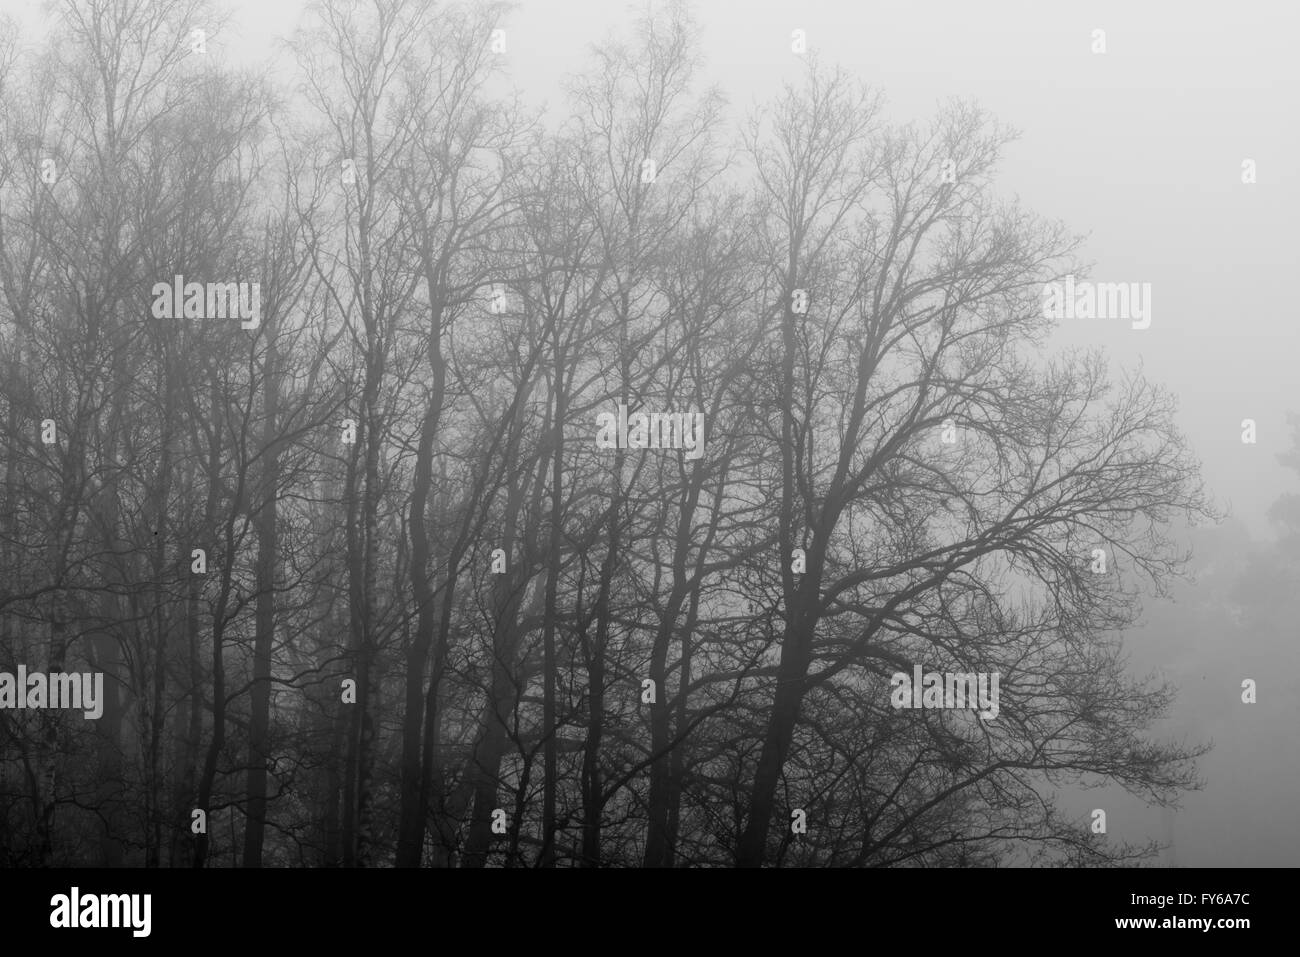 Gray tree outlines in the fog as background picture - Stock Image